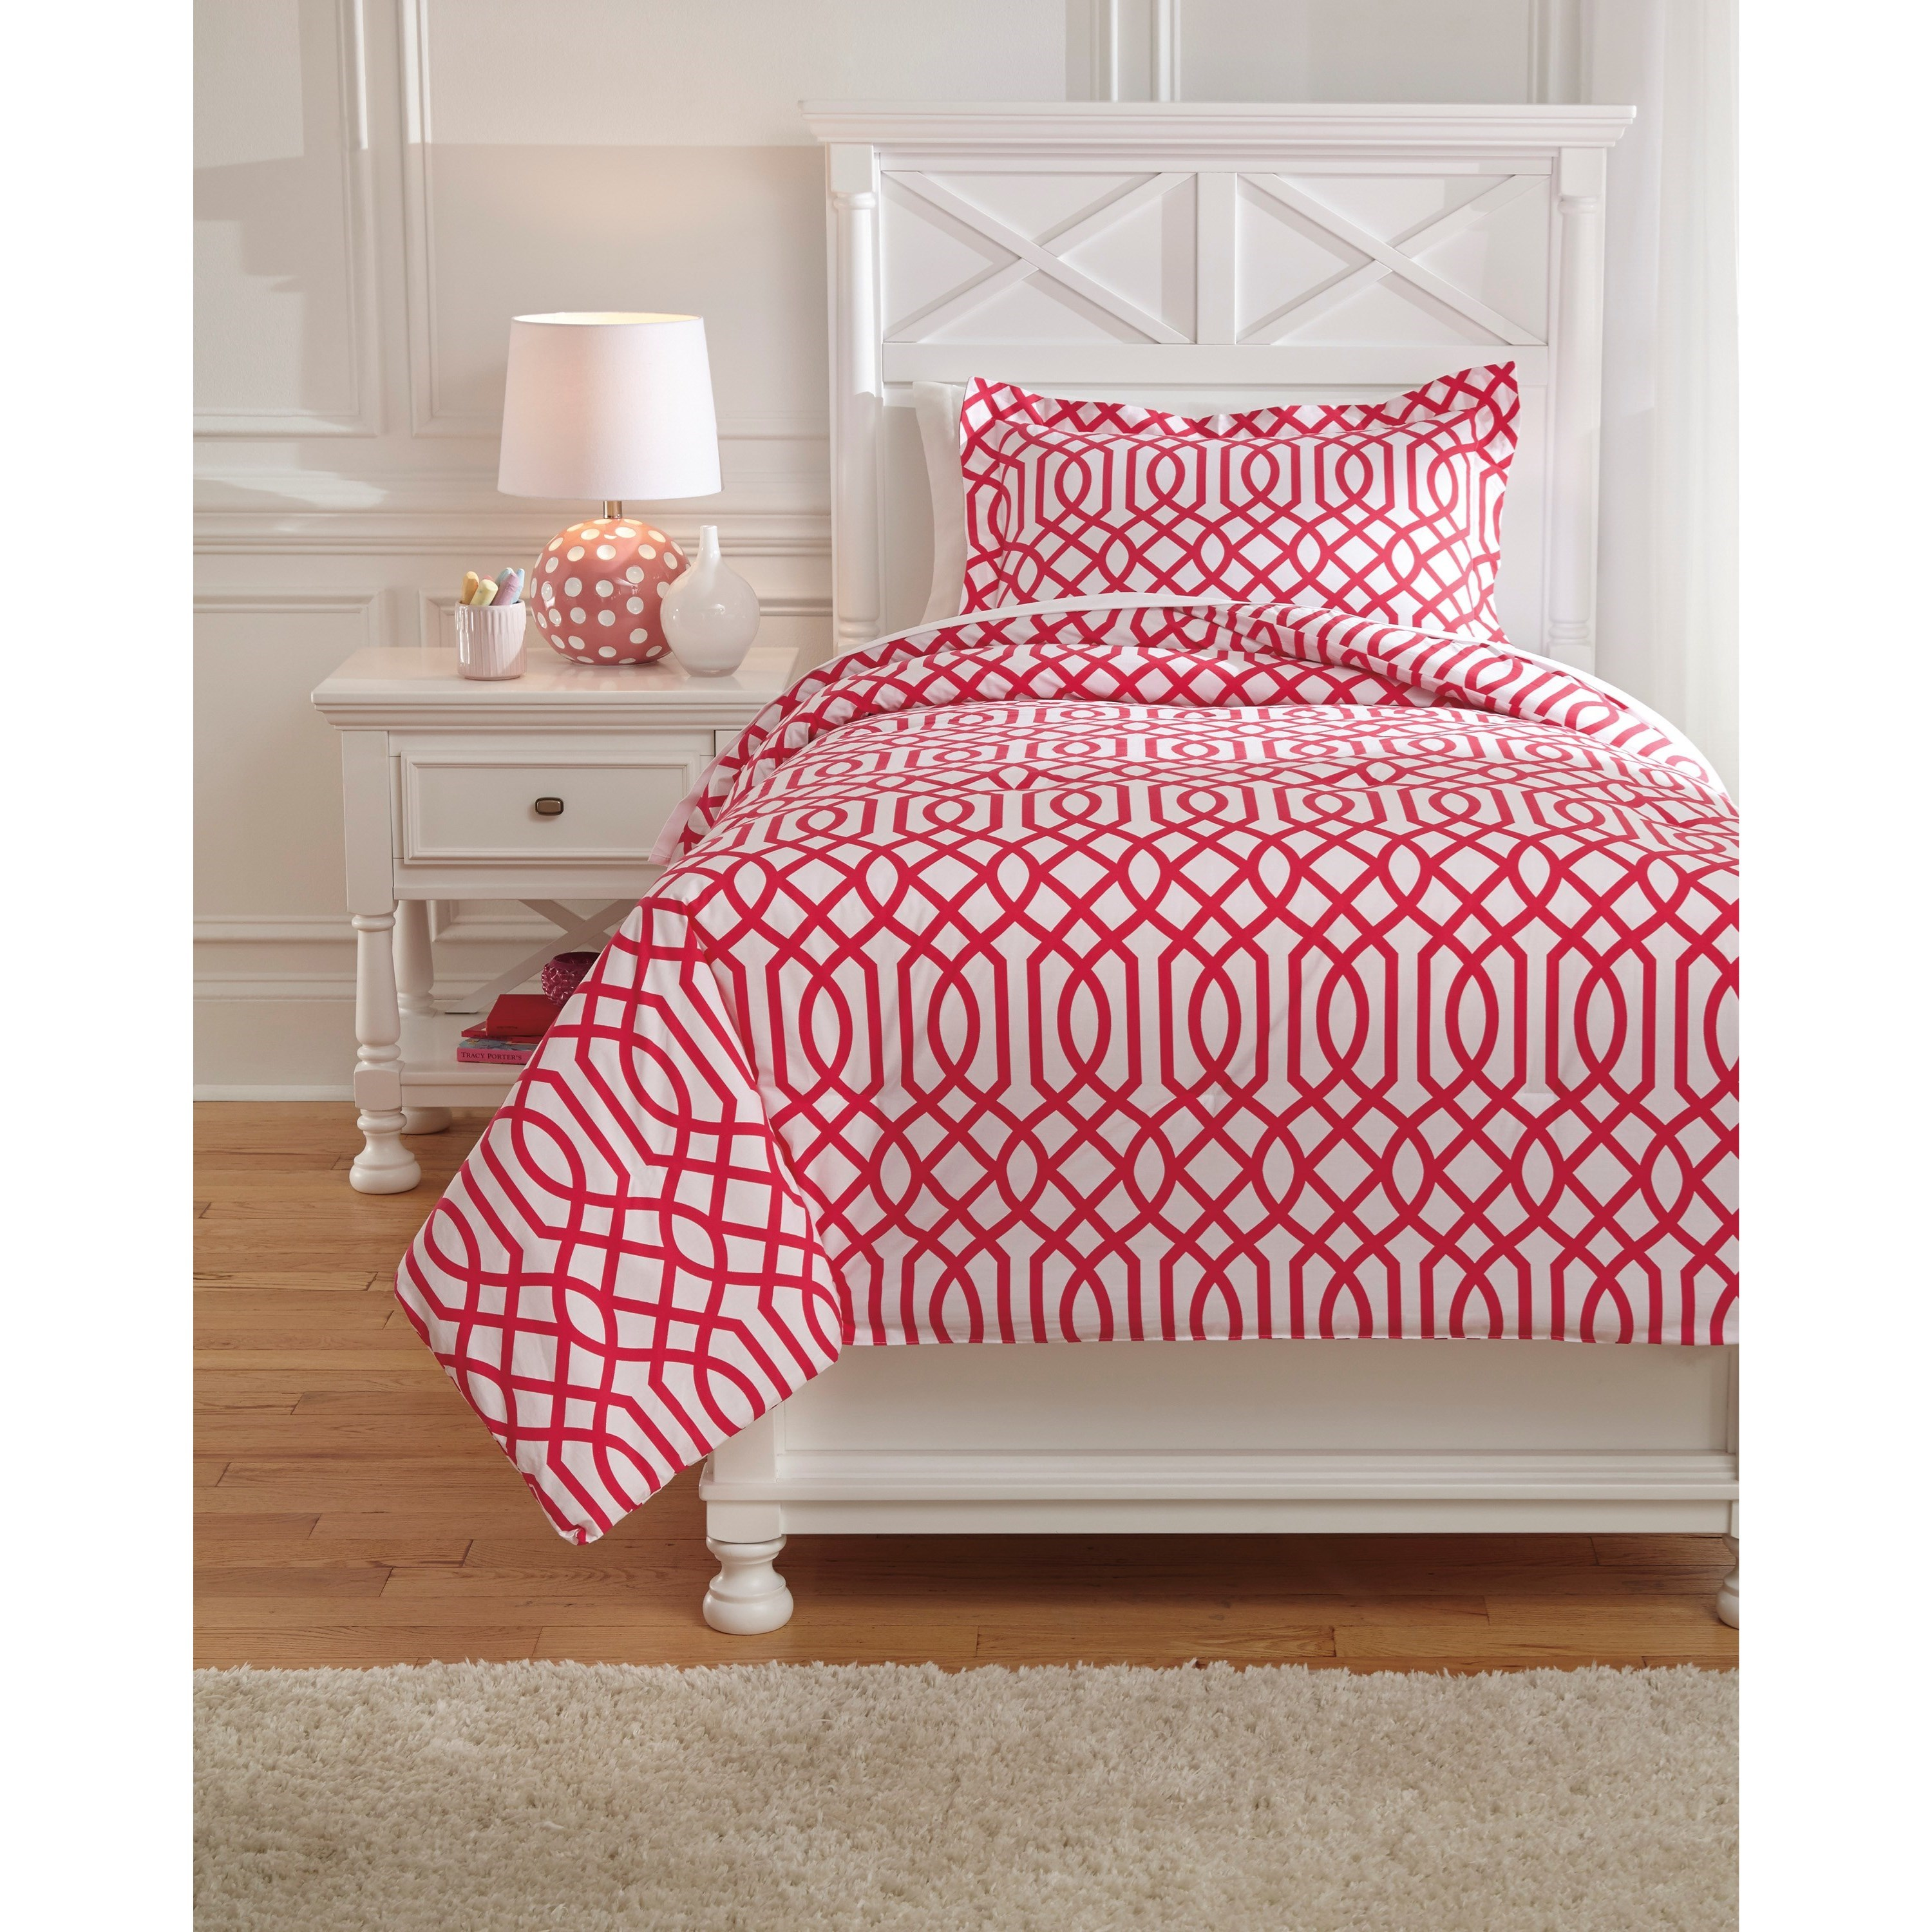 Bedding Sets Twin Loomis Fuschsia Comforter Set by Signature Design by Ashley at Household Furniture